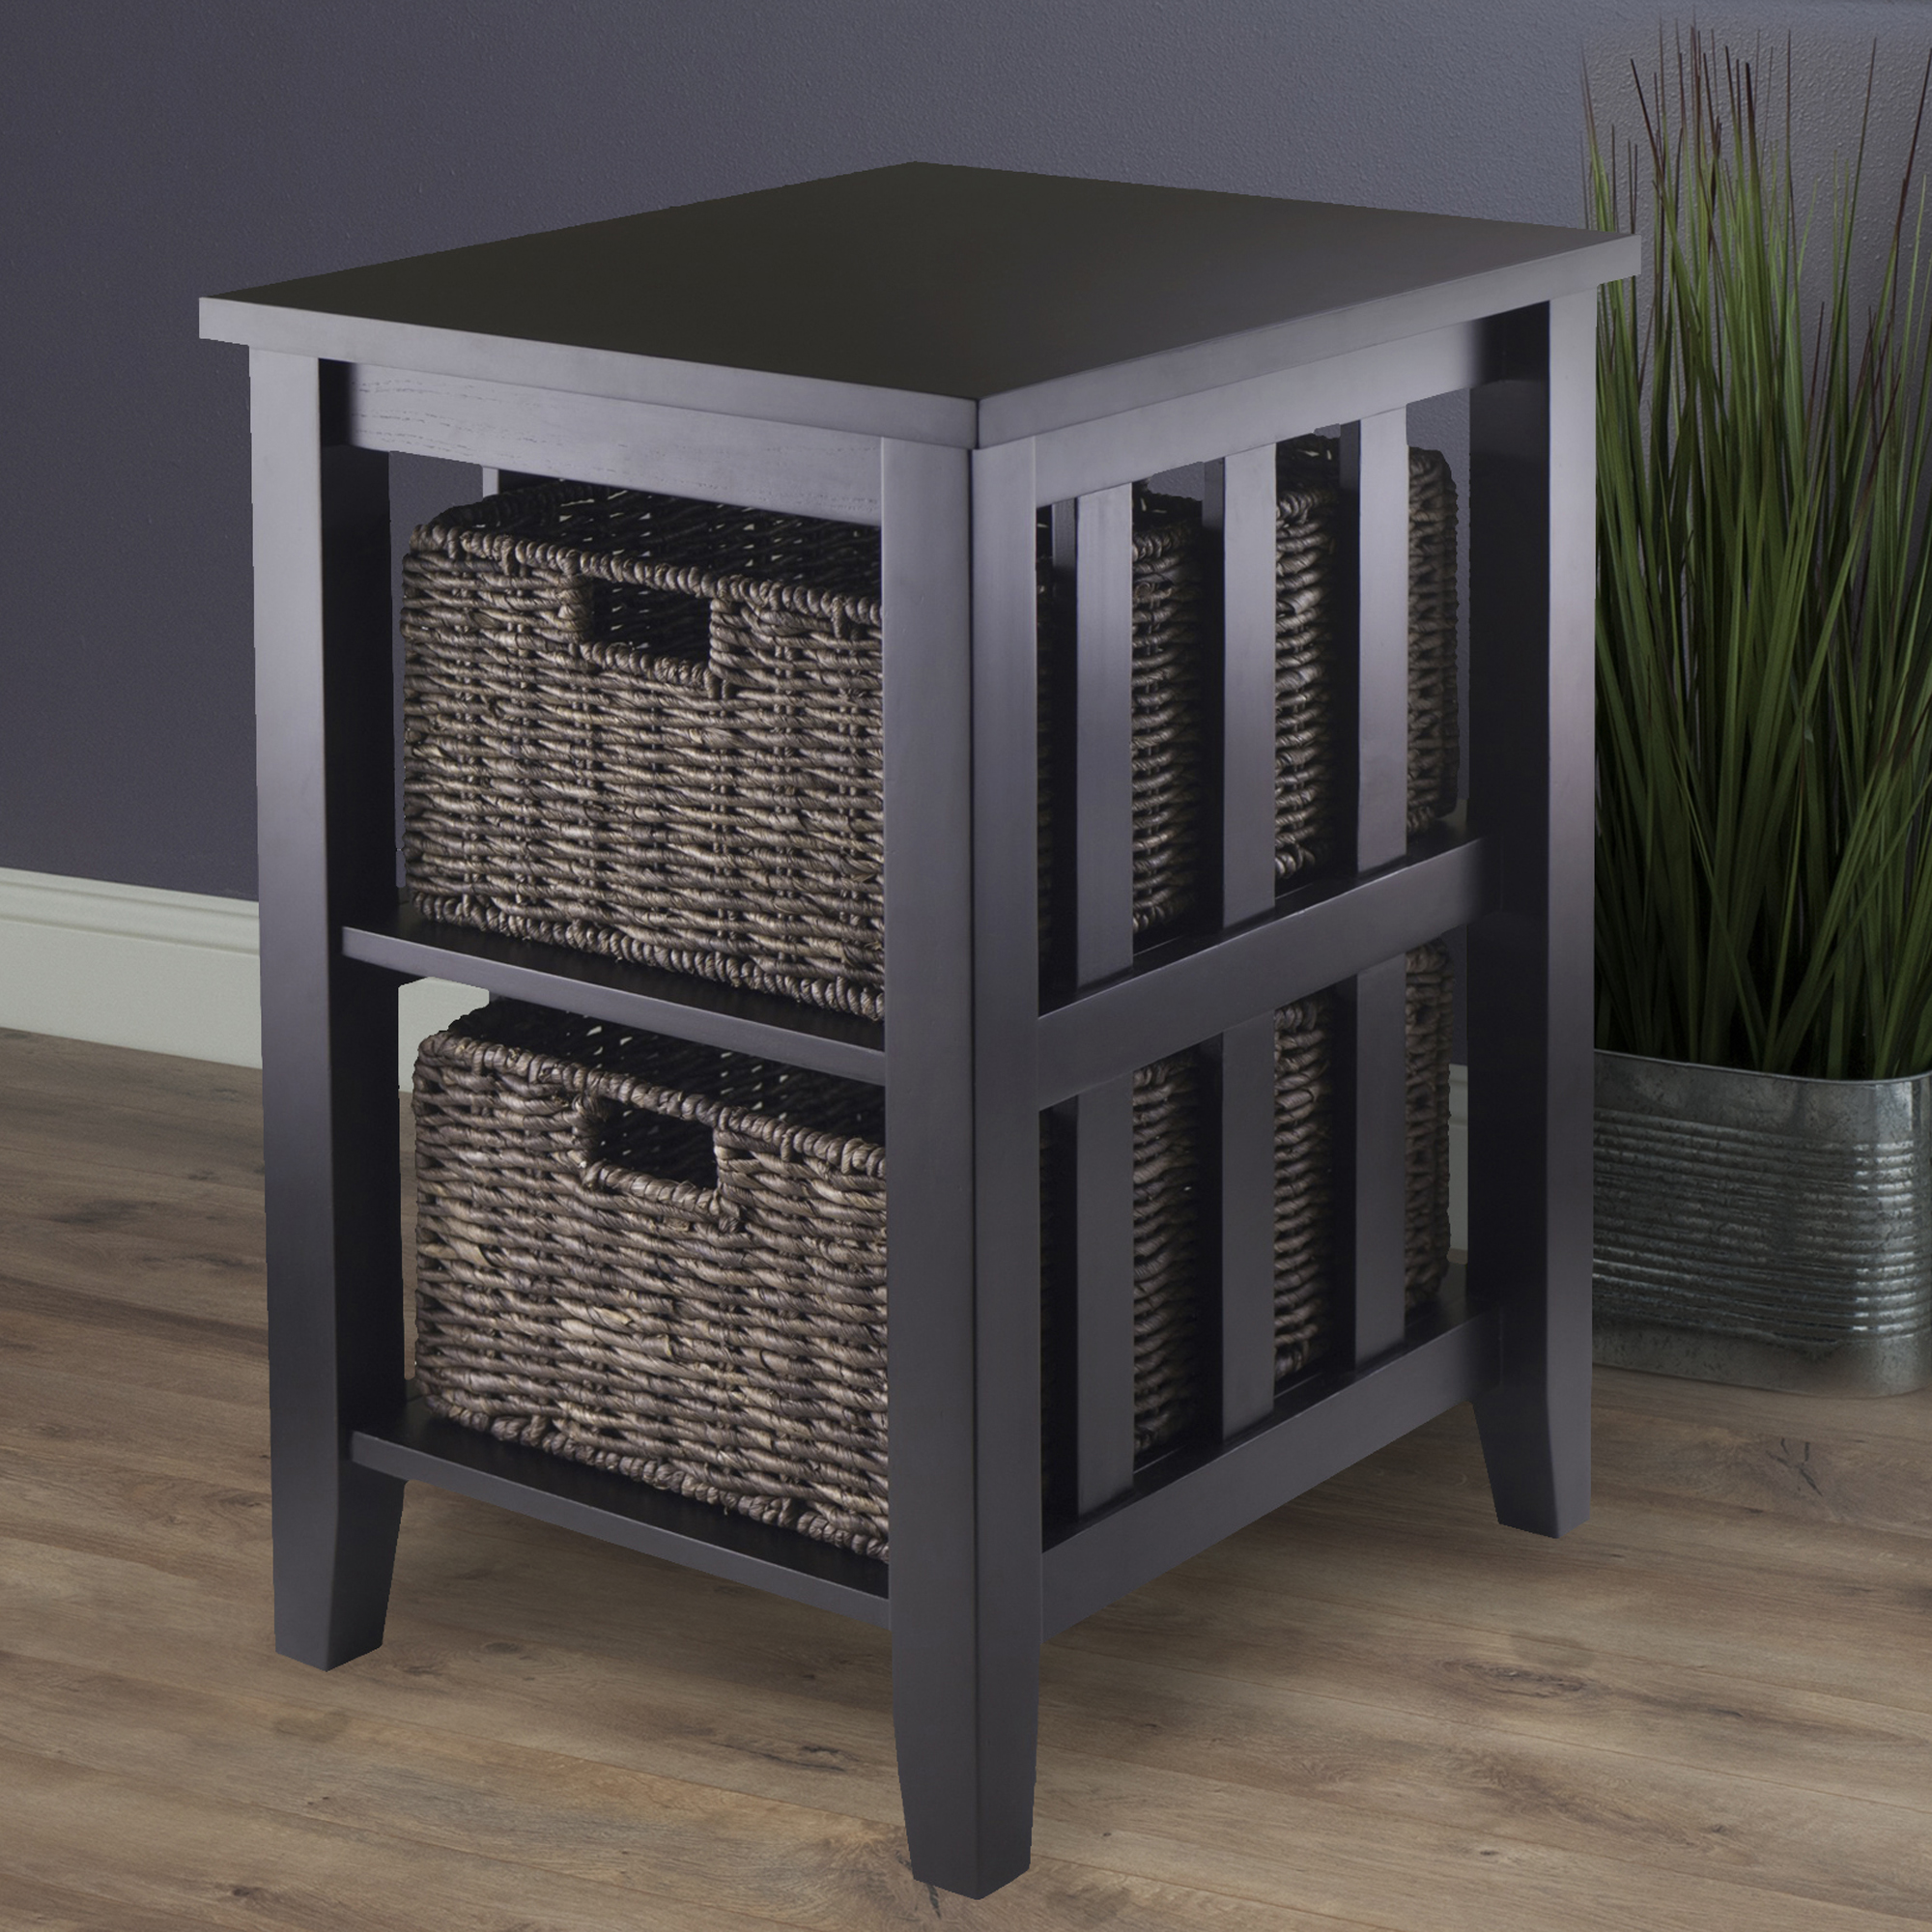 winsome wood morris accent table with storage baskets espresso finish compact office desk black sideboard stone top coffee sets dining runners and placemats small round occasional